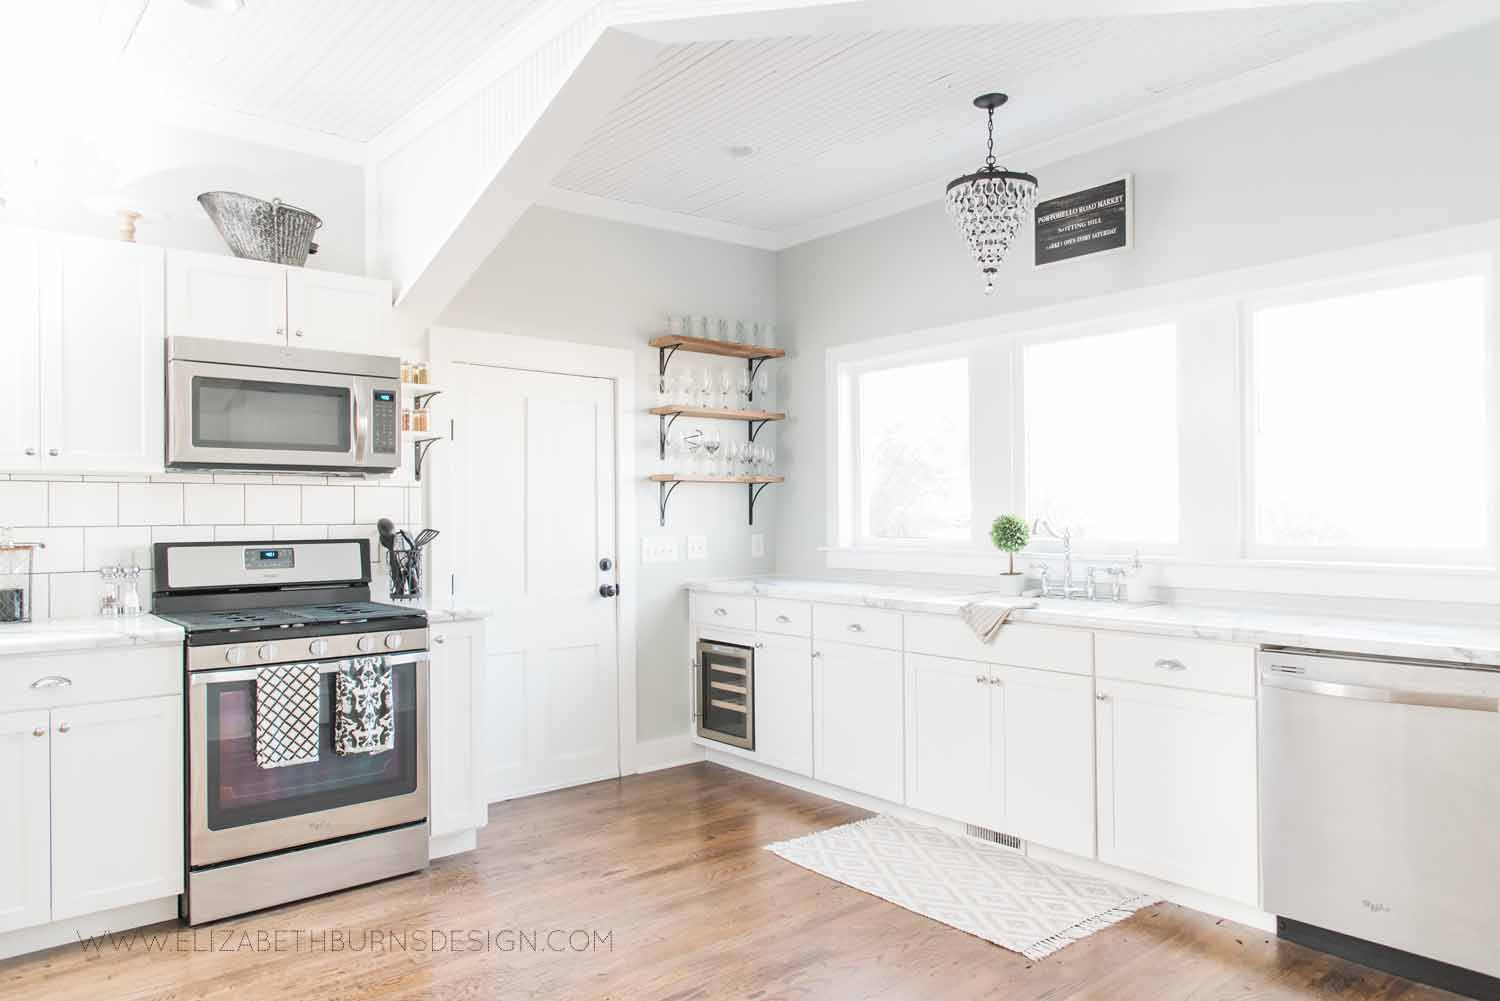 Elizabeth Burns Design Raleigh Interior Designer  Farmhouse Fixer Upper Cottage Renovation, Sherwin Williams Silver Strand SW 7057 White Shaker Cabinets Formica Marble Counters Kitchen (6).jpg